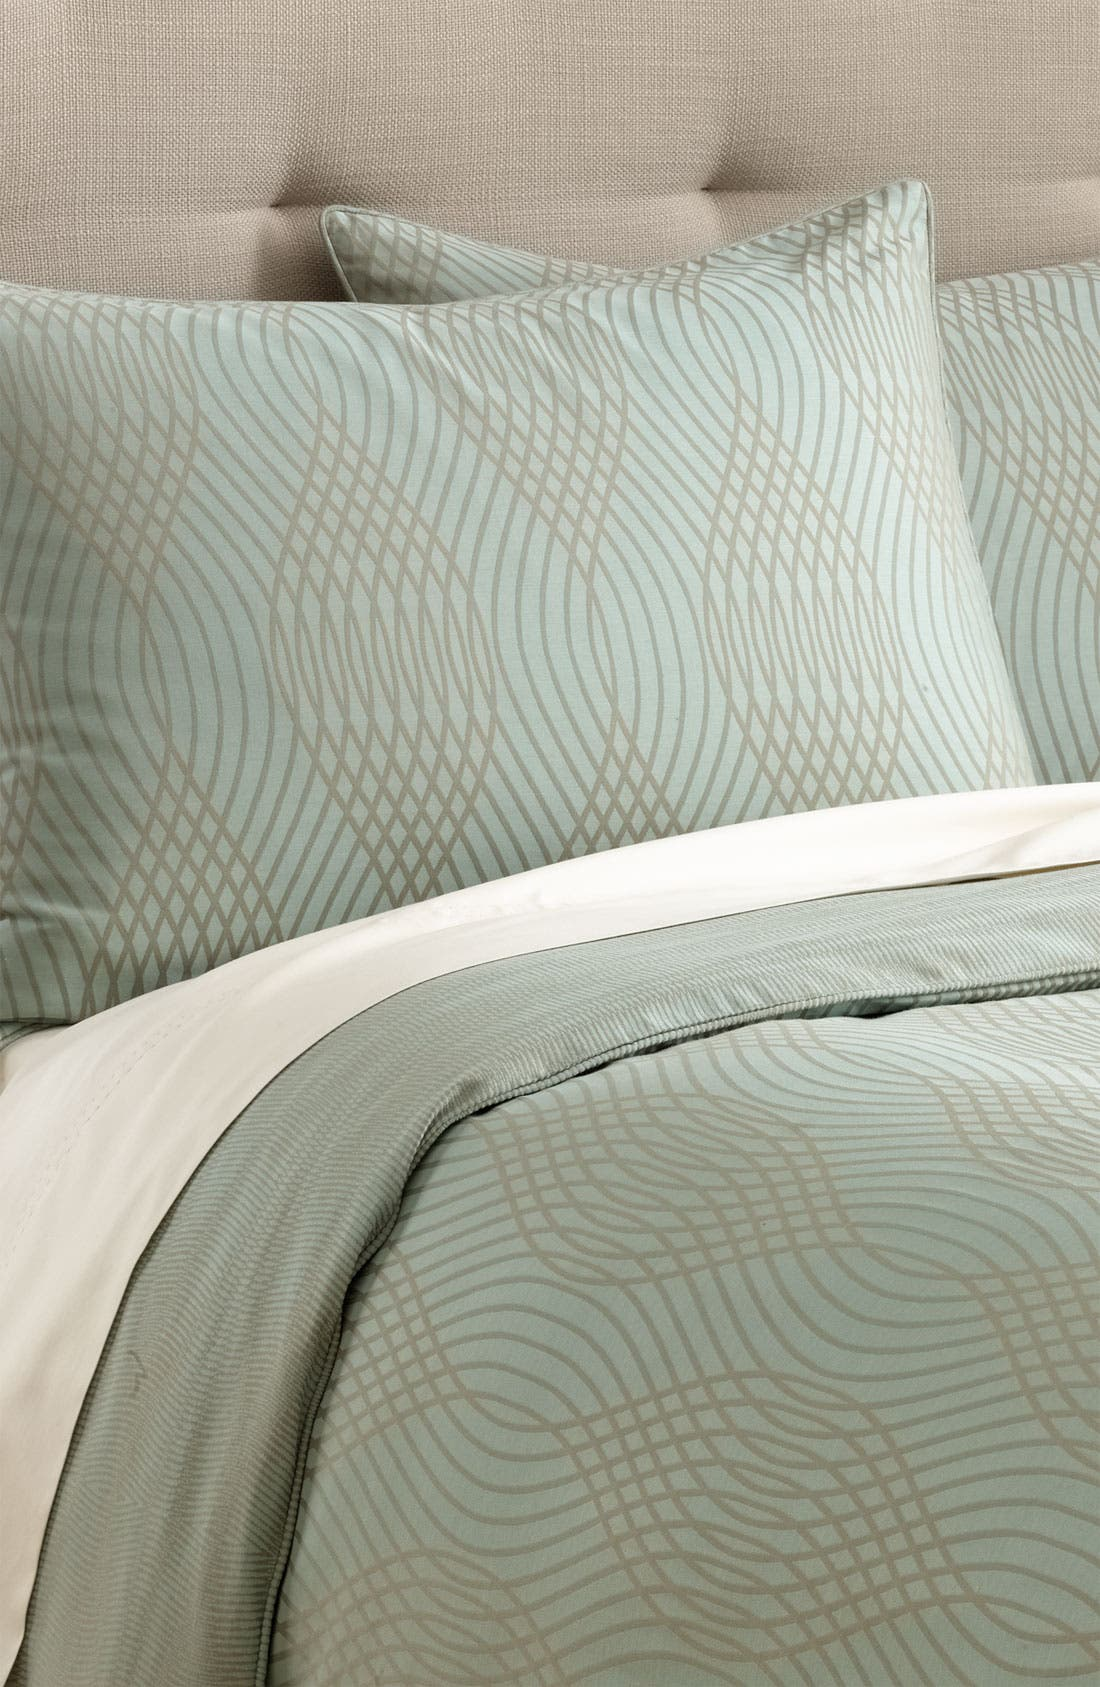 Alternate Image 1 Selected - Nordstrom at Home 'Nouveau Wave' 300 Thread Count Pillow Sham